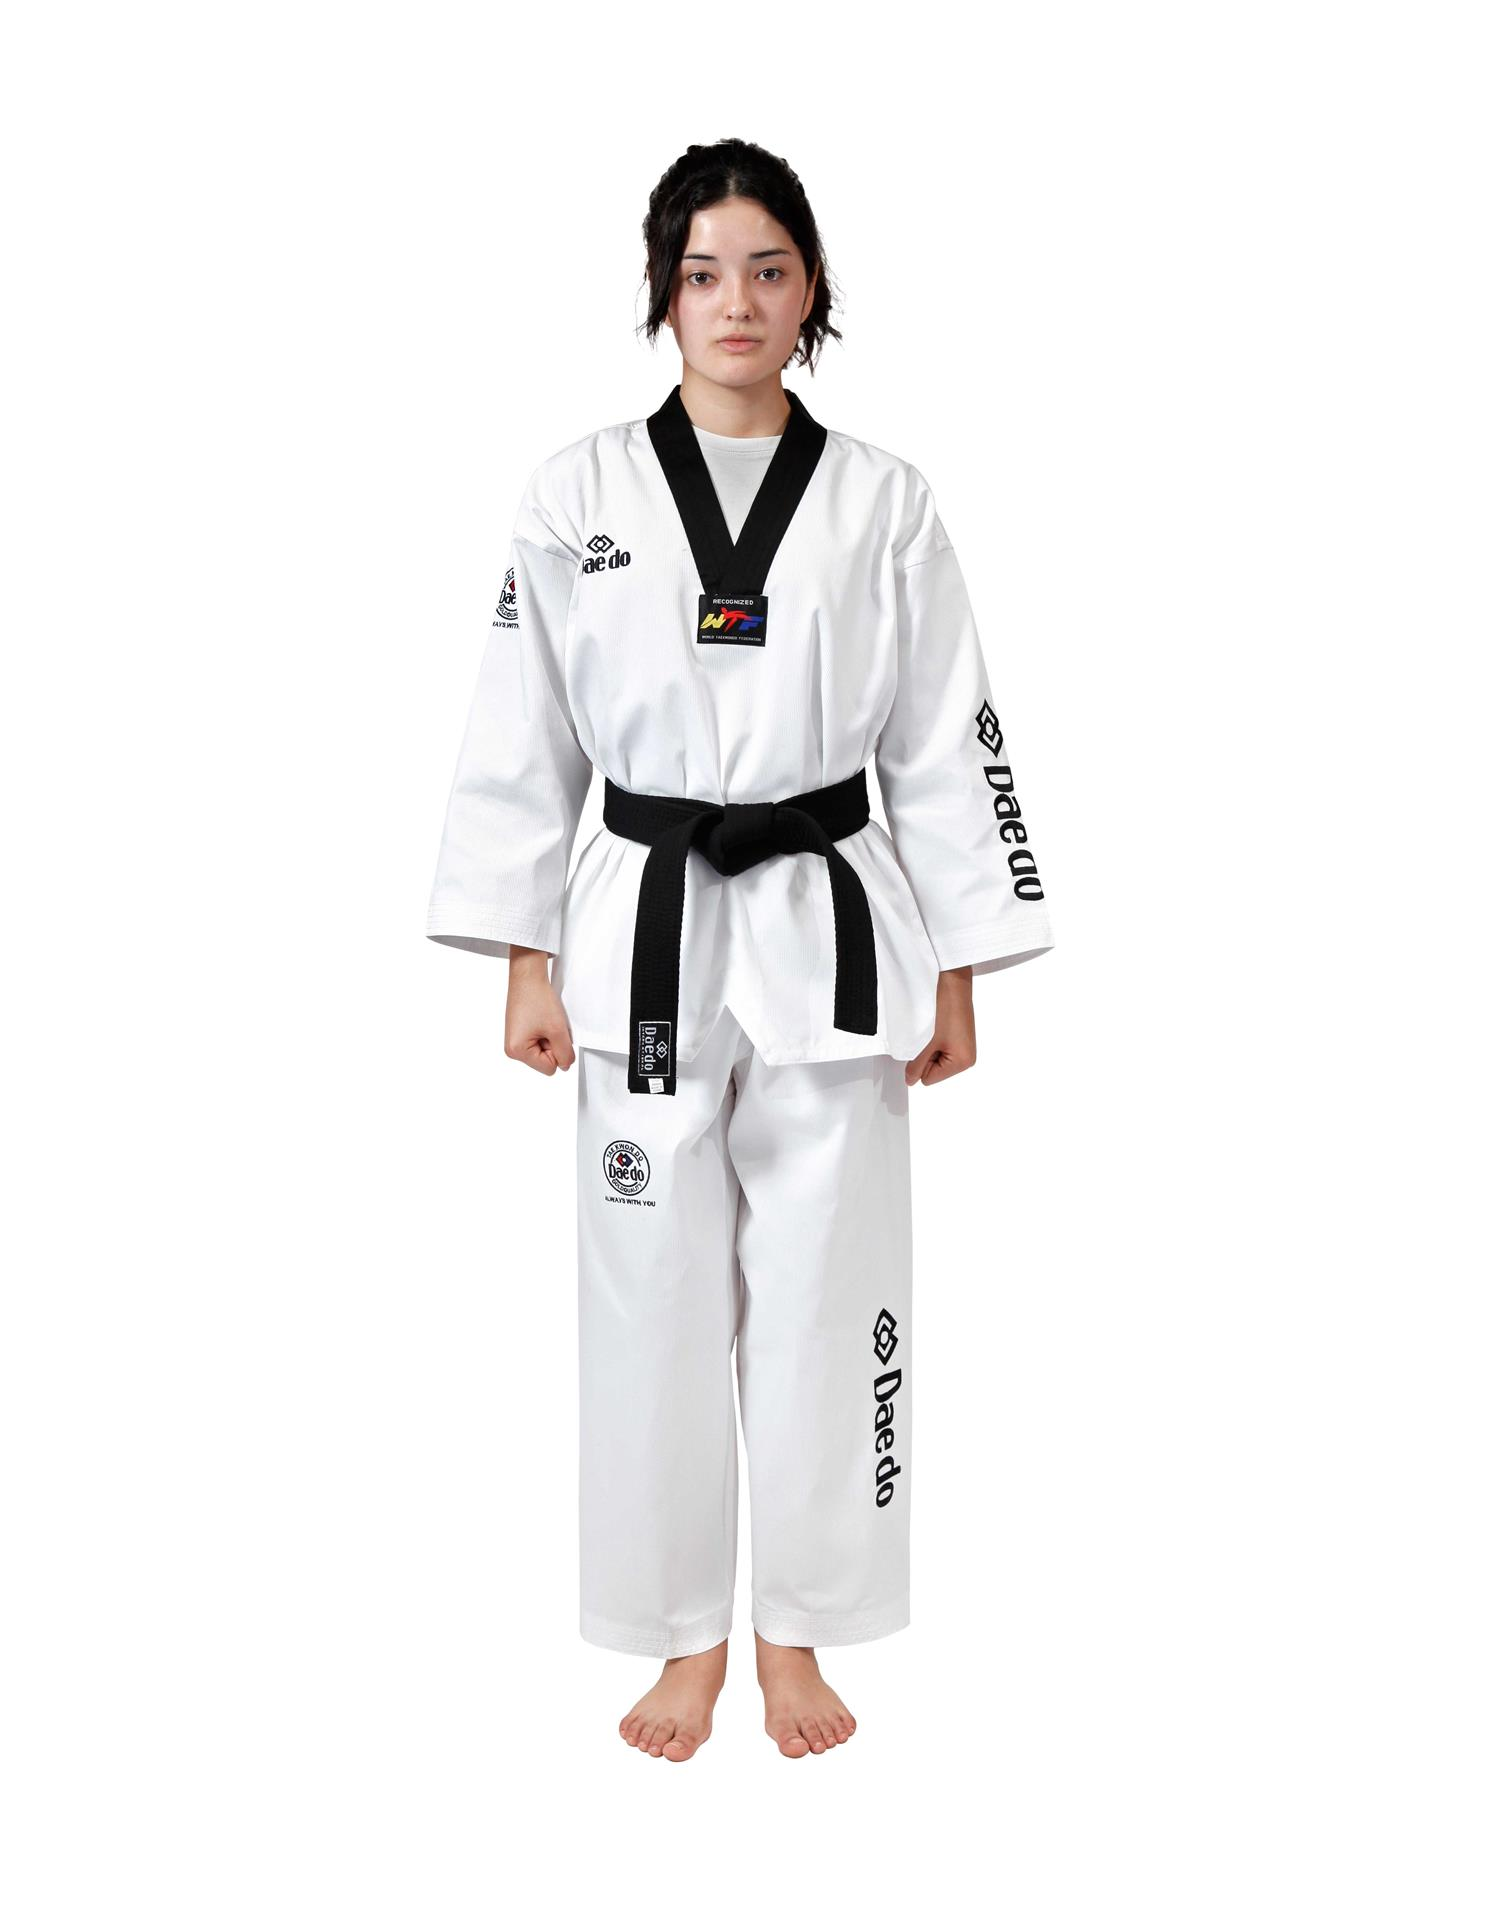 Dae Do Dobok WTF Seoul Dae do (6° - 190cm - BIANCO collo NERO)